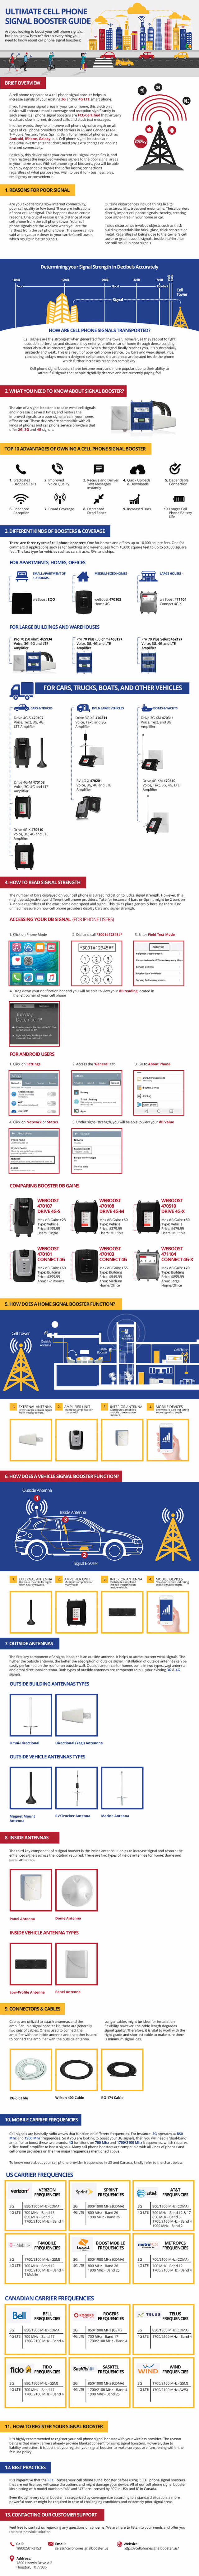 Ultimate cell phone signal booster guide infographic